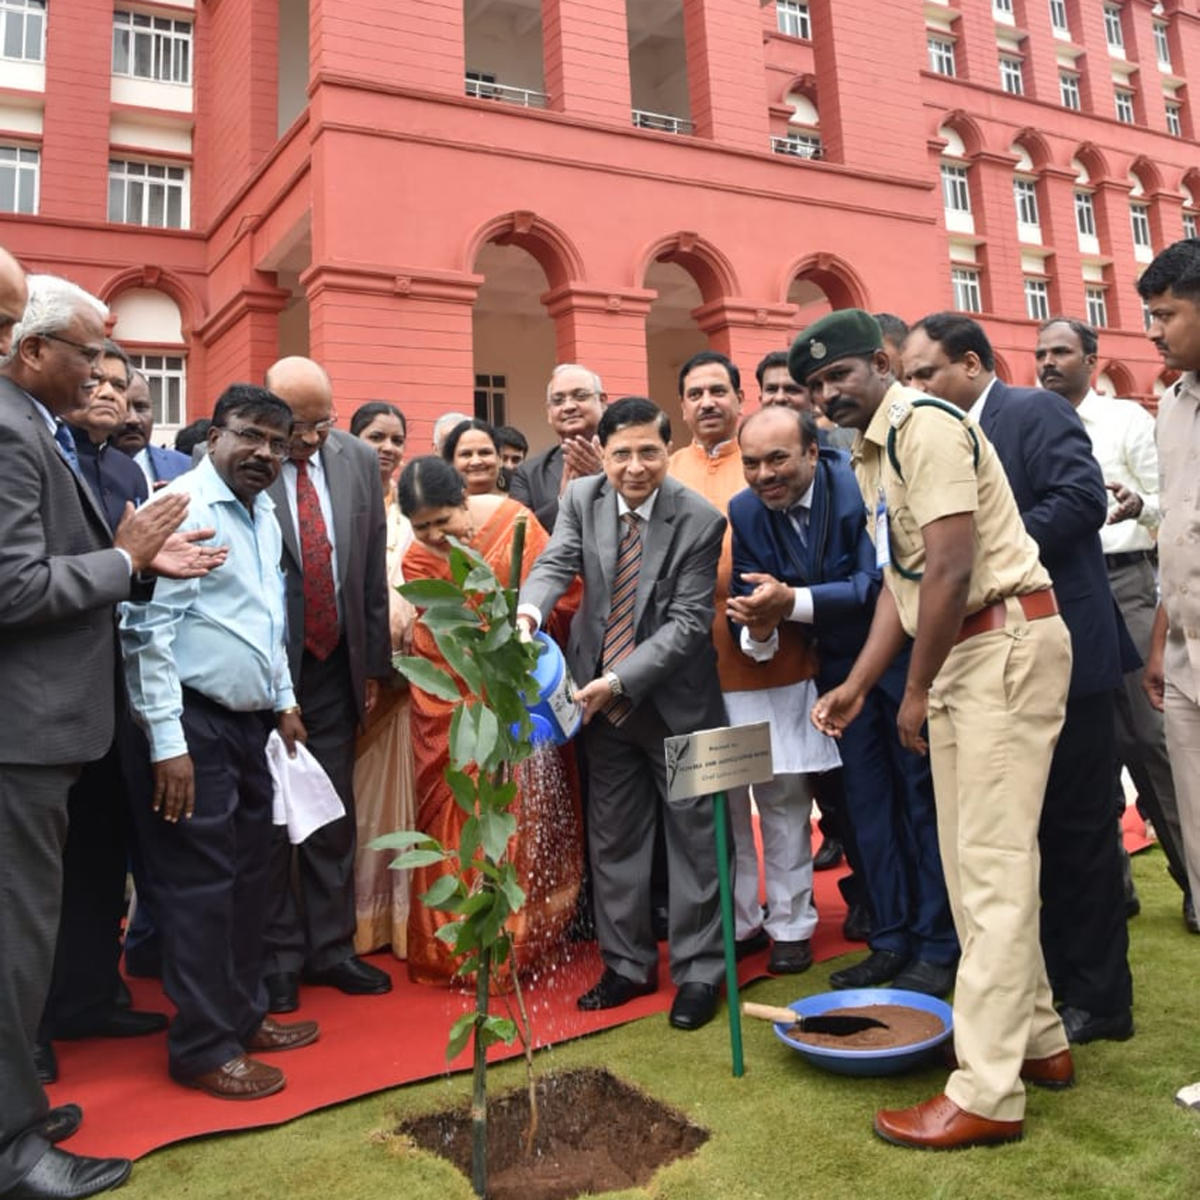 Chief Justice of India Dipak Misra waters a plant during the inauguration of the new court complex in Hubballi on Sunday. DH Photo